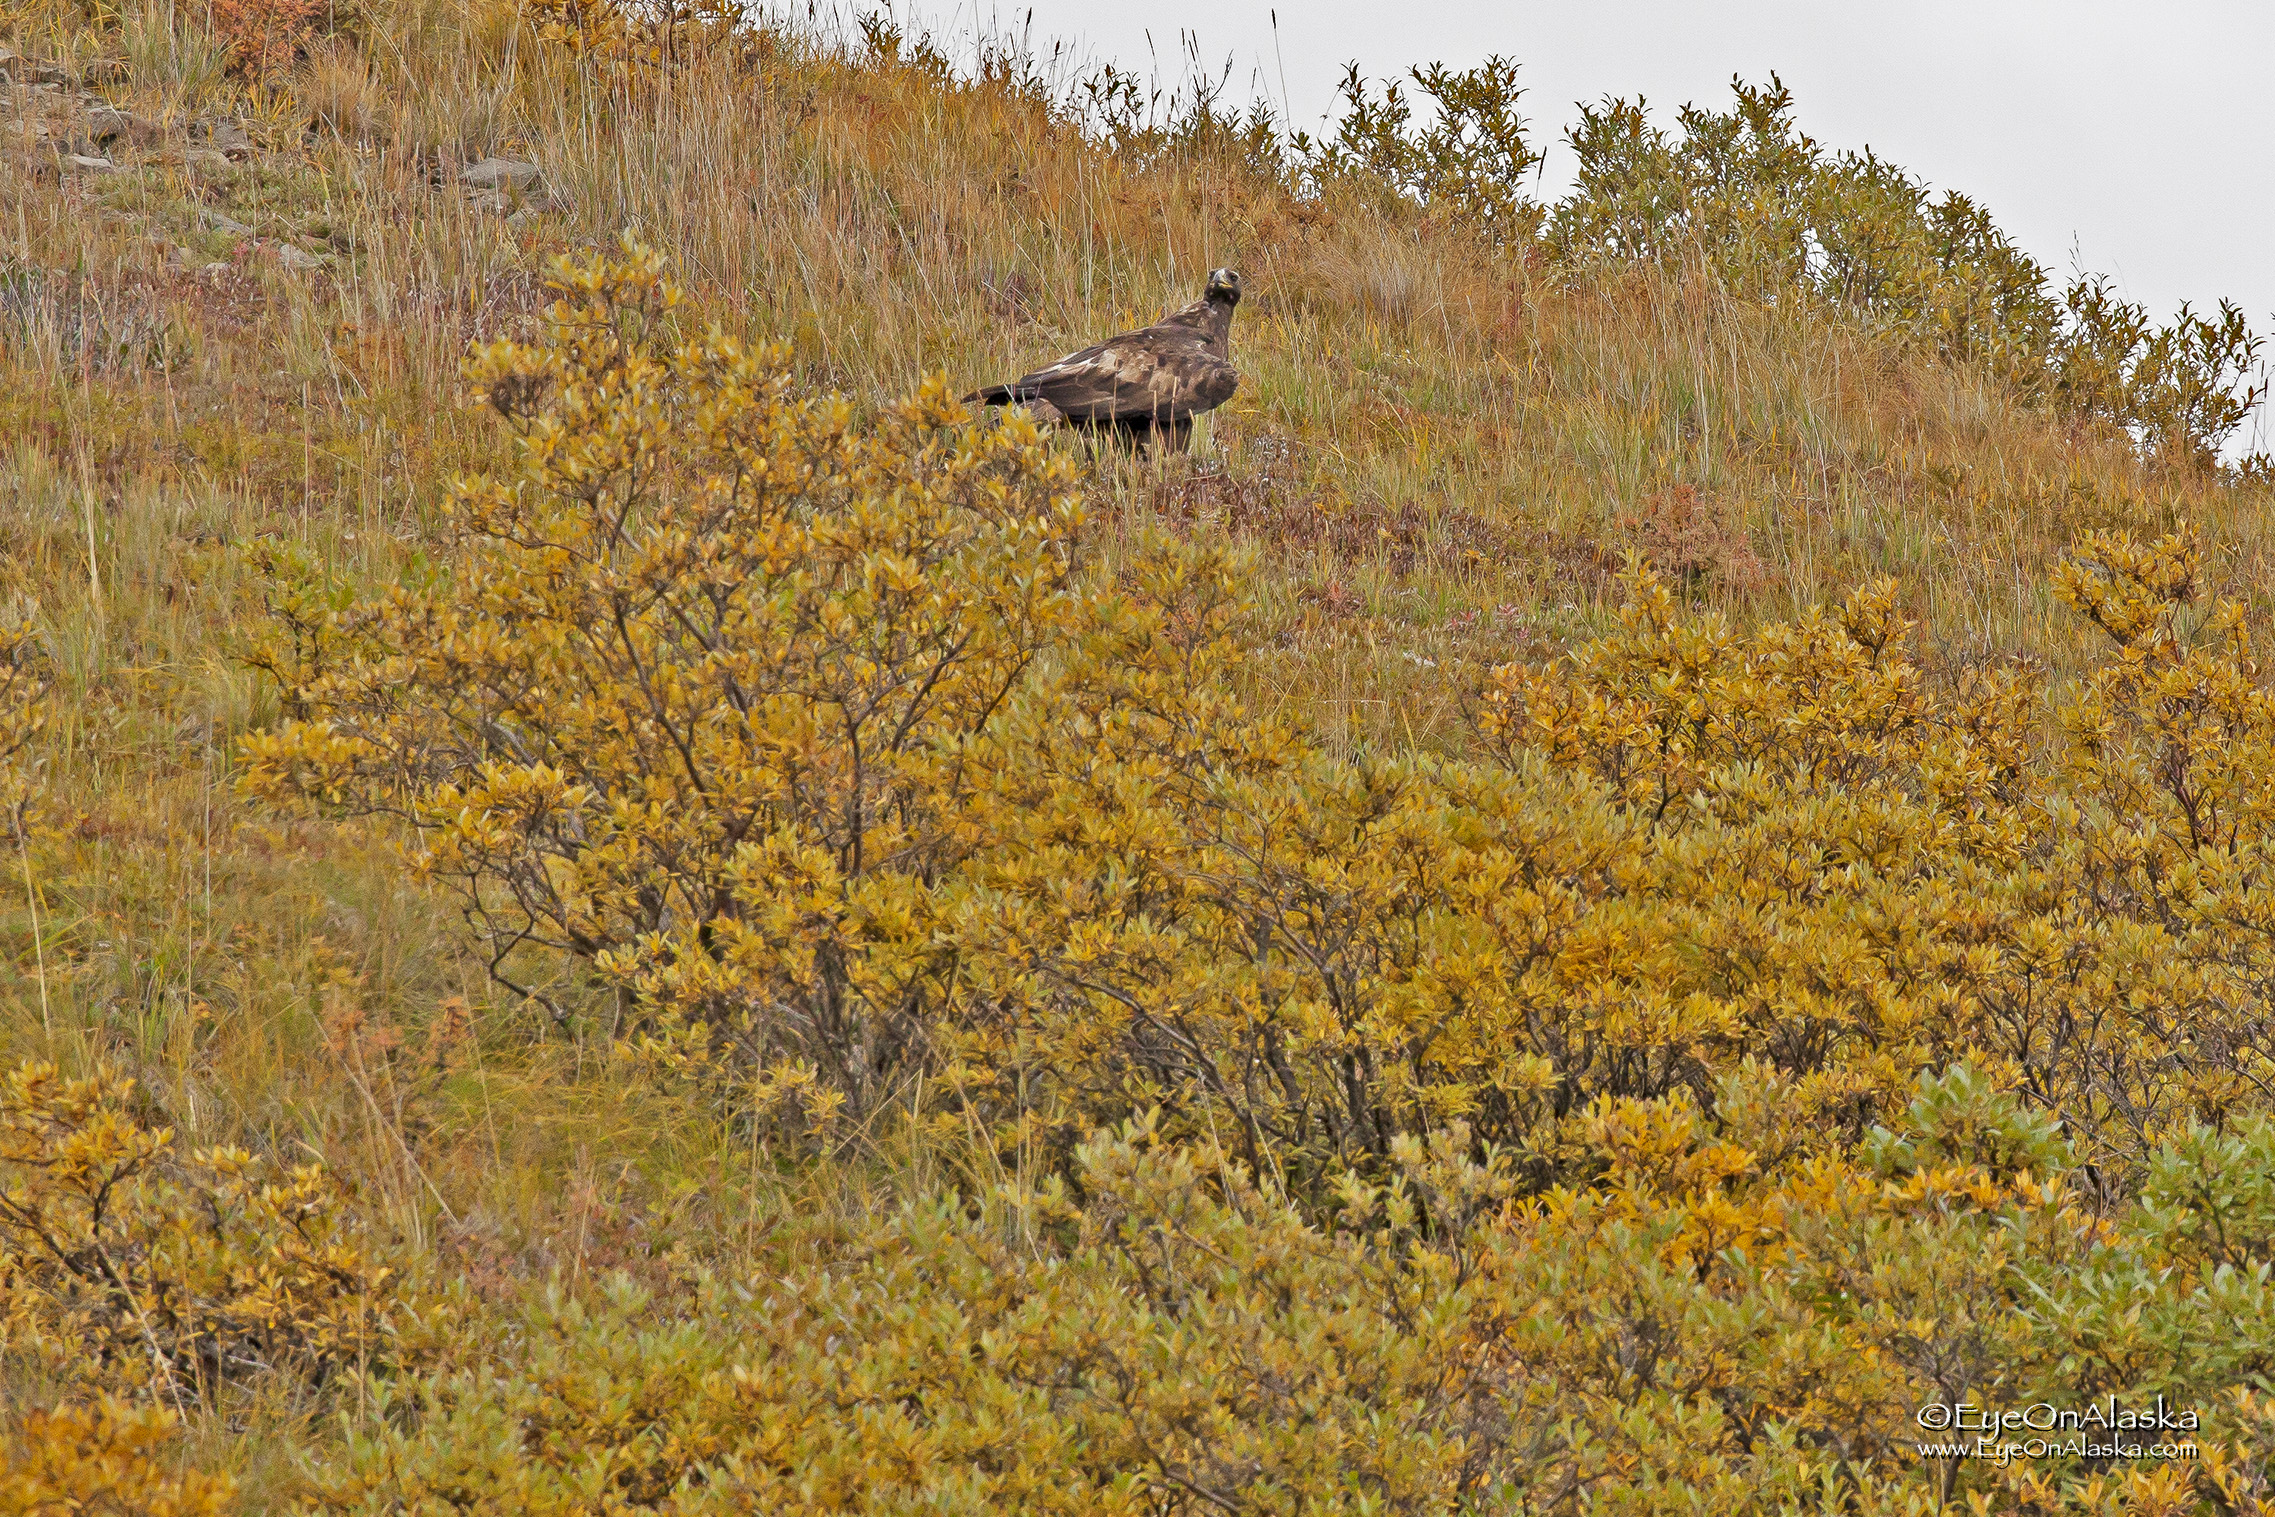 We give up on heading further into the Park, and instead head back toward Toklat.  As we're riding up a hill this Golden Eagle lands on the bluff just above us.